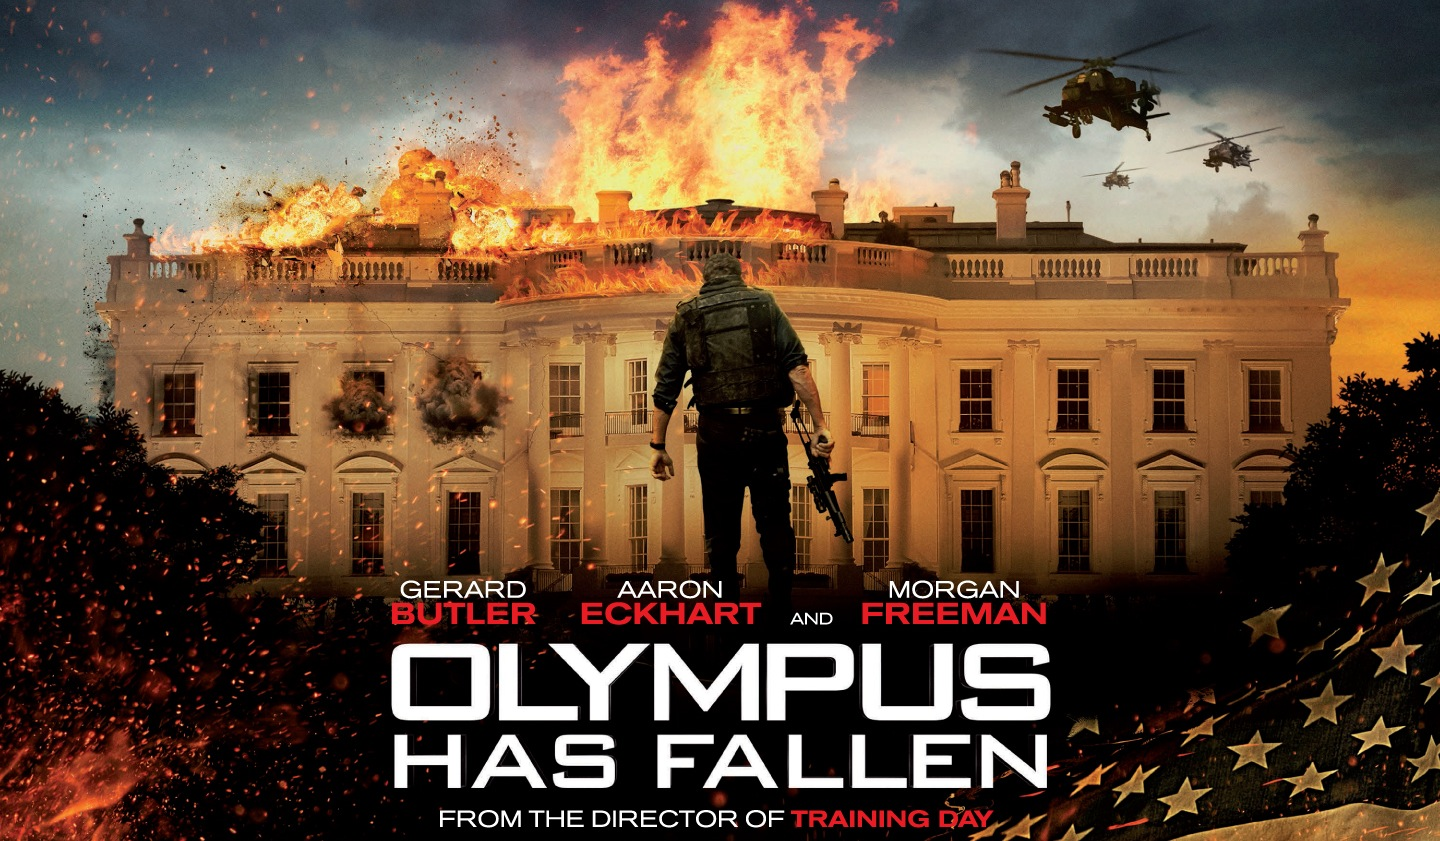 New To DVD And Blu-Ray: August 13th, 2013 – Olympus Has Fallen, The Company You Keep, The Muppet Movie and More